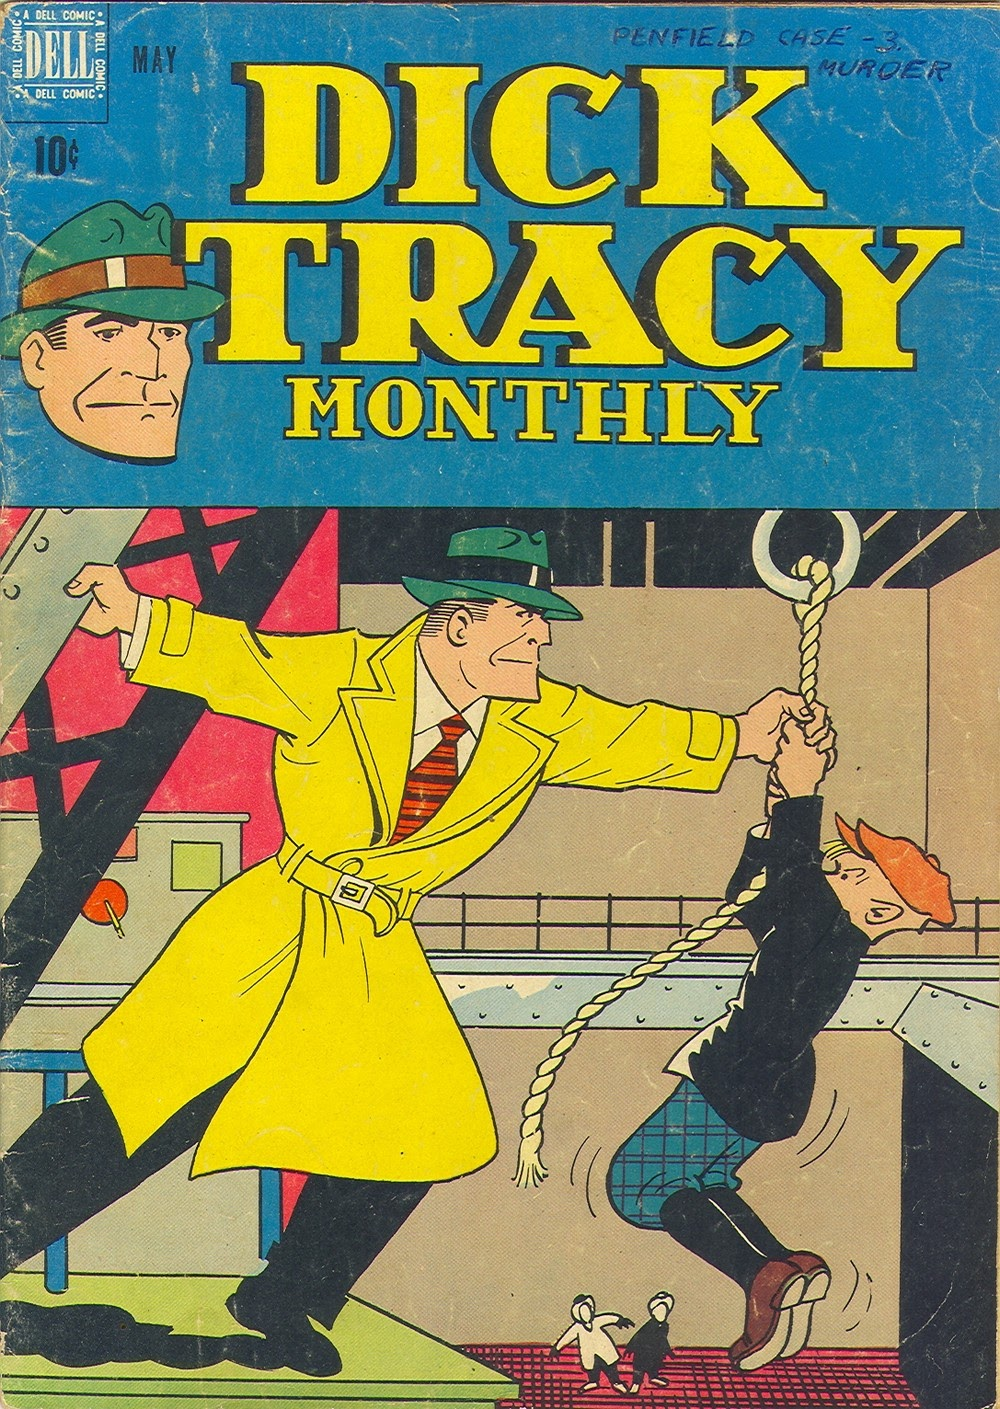 Dick Tracy Monthly issue 5 - Page 1